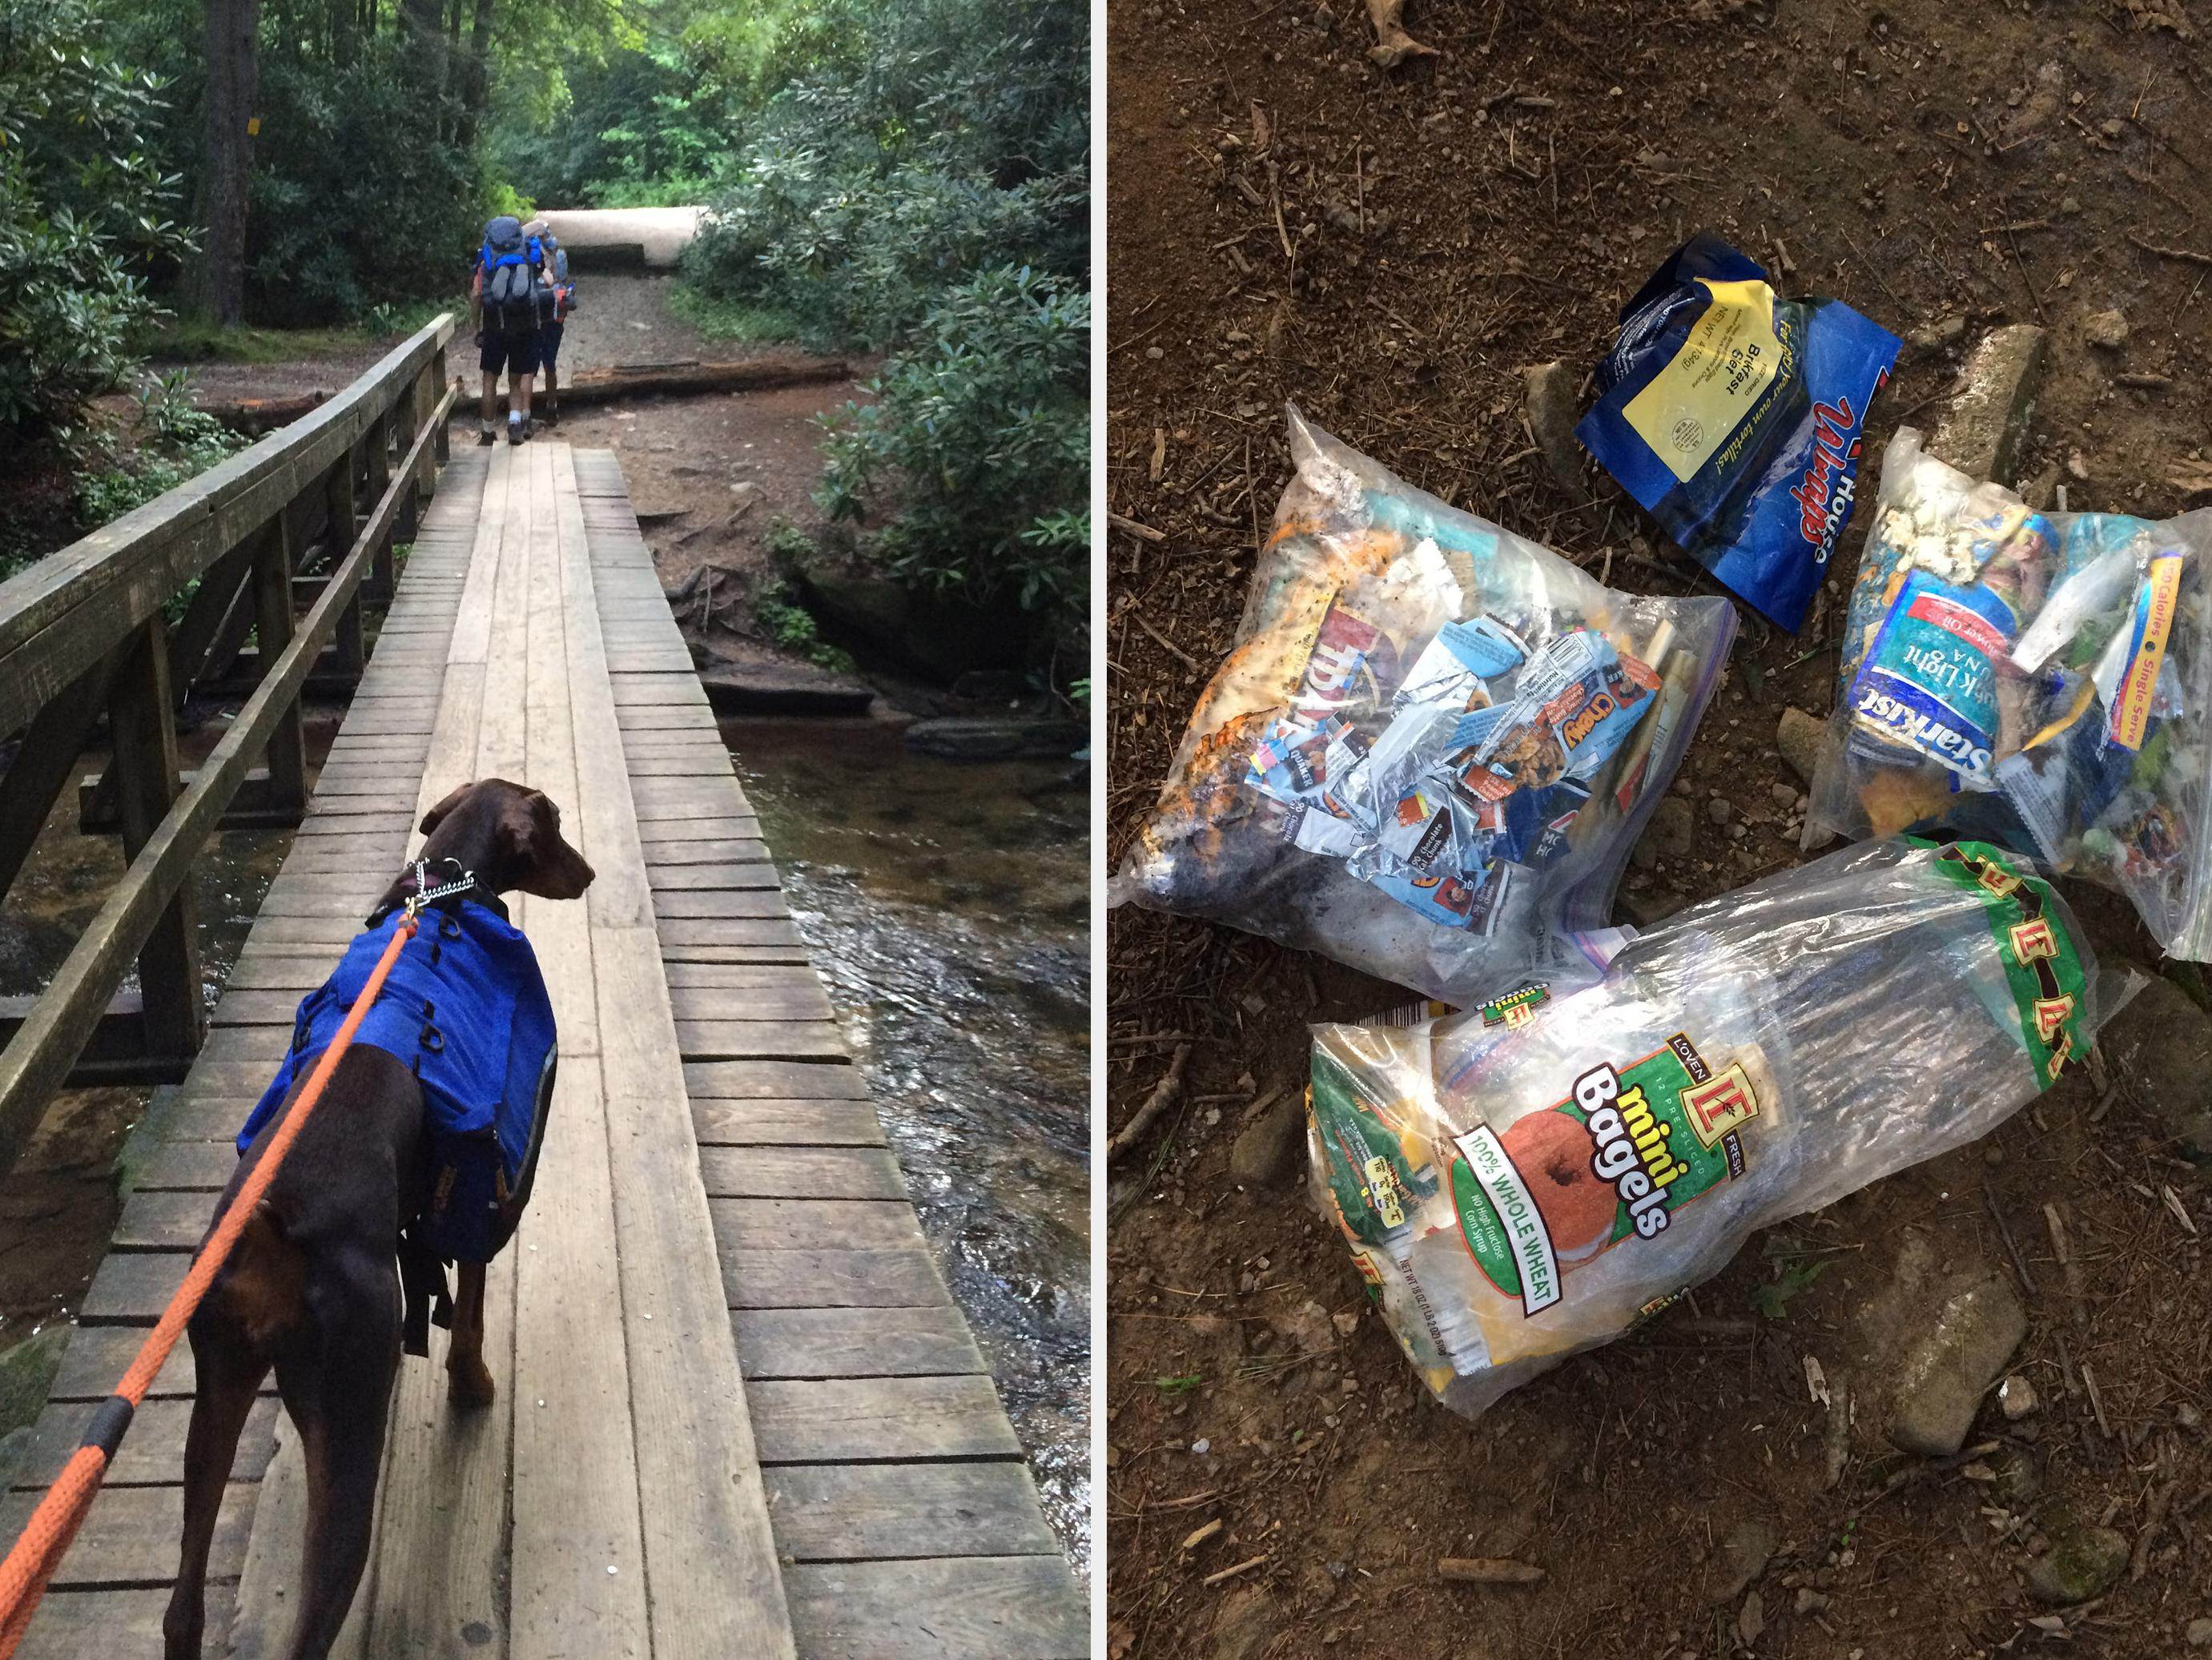 Keep dogs on leashes while on nature trails to keep them from chasing or harassing the wildlife. Bring all trash and leftover food with you when your outdoor adventure concludes. (Photos by MSU Extension Service/Evan O'Donnell)